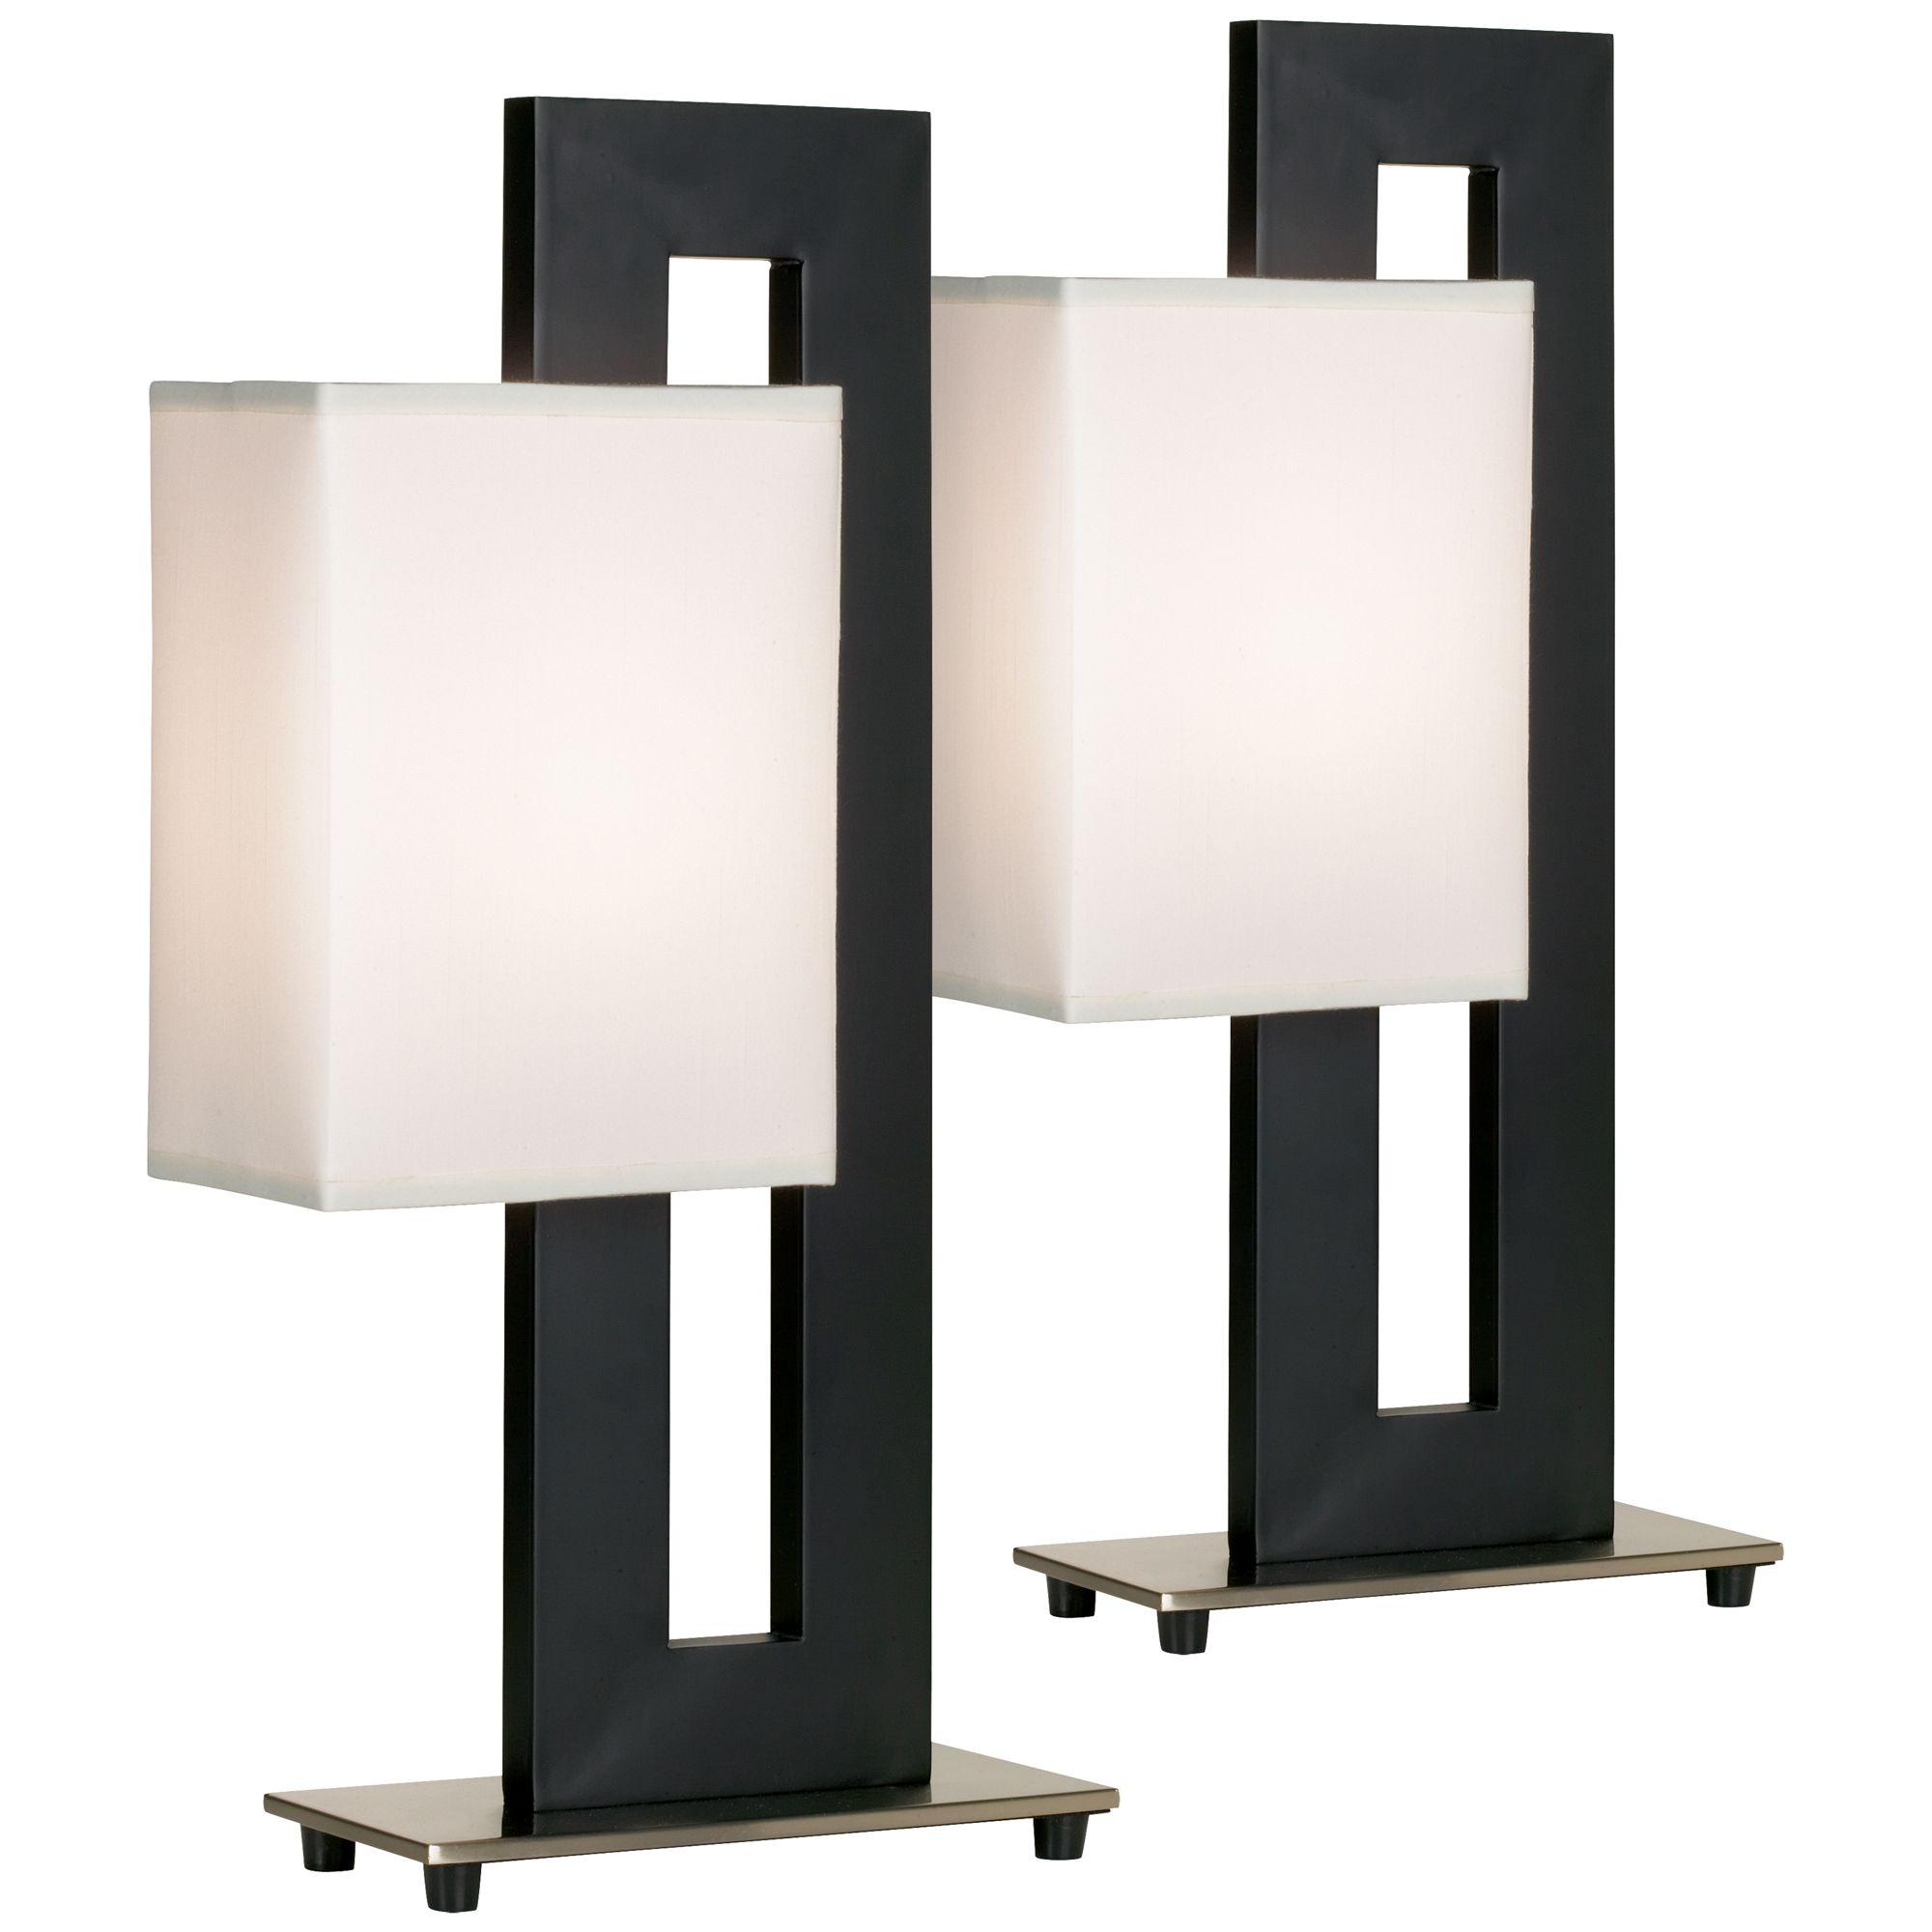 lighting modern accent table lamps set black floating square white rectangular shade for living room family bedroom glass and brass oval coffee thin cabinet media console small